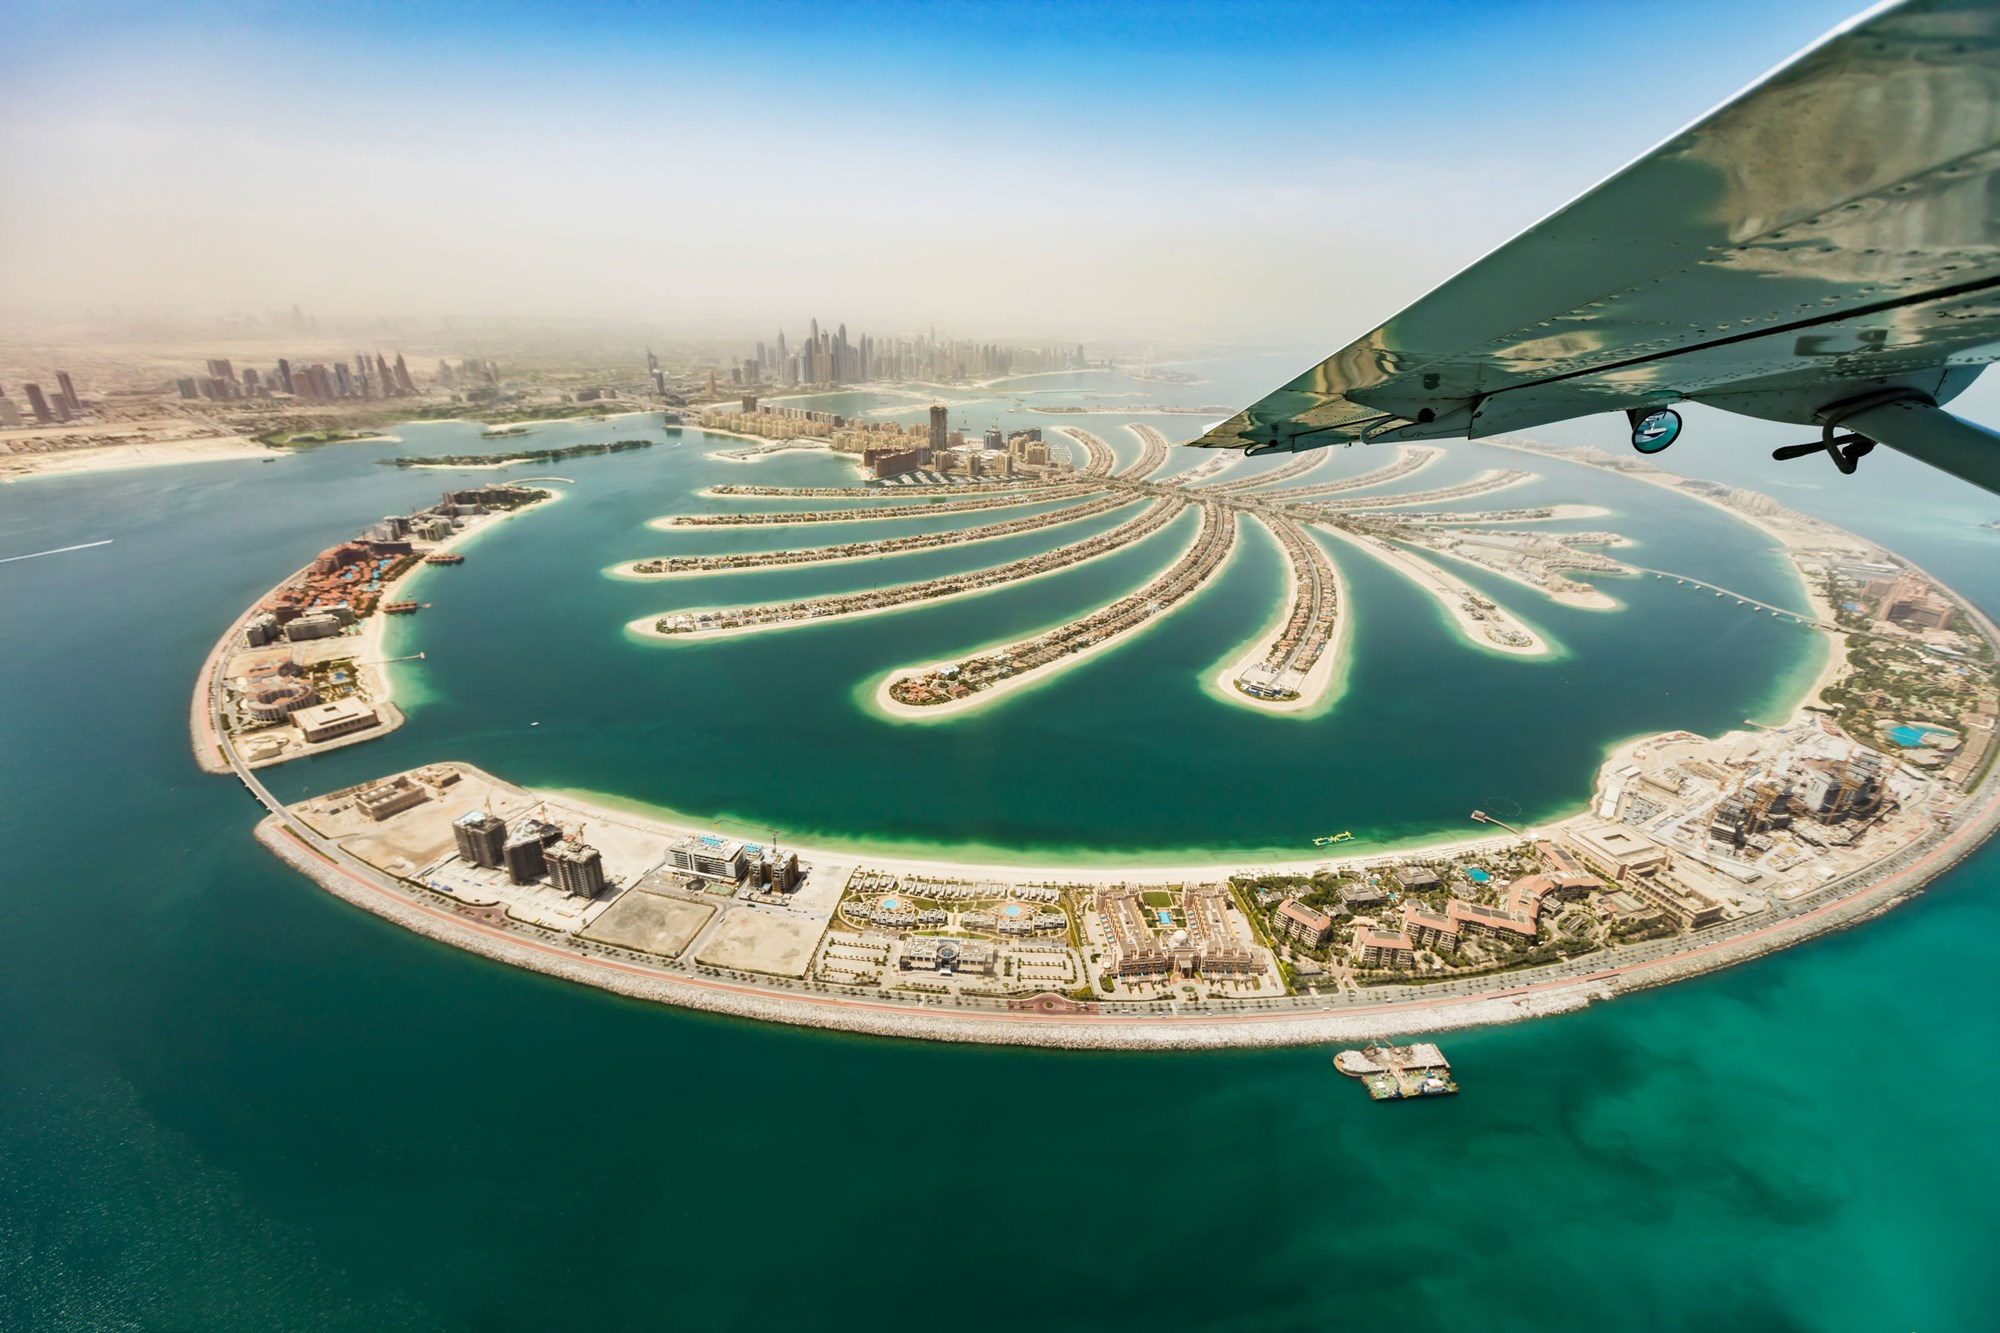 Image of United Arab Emirates